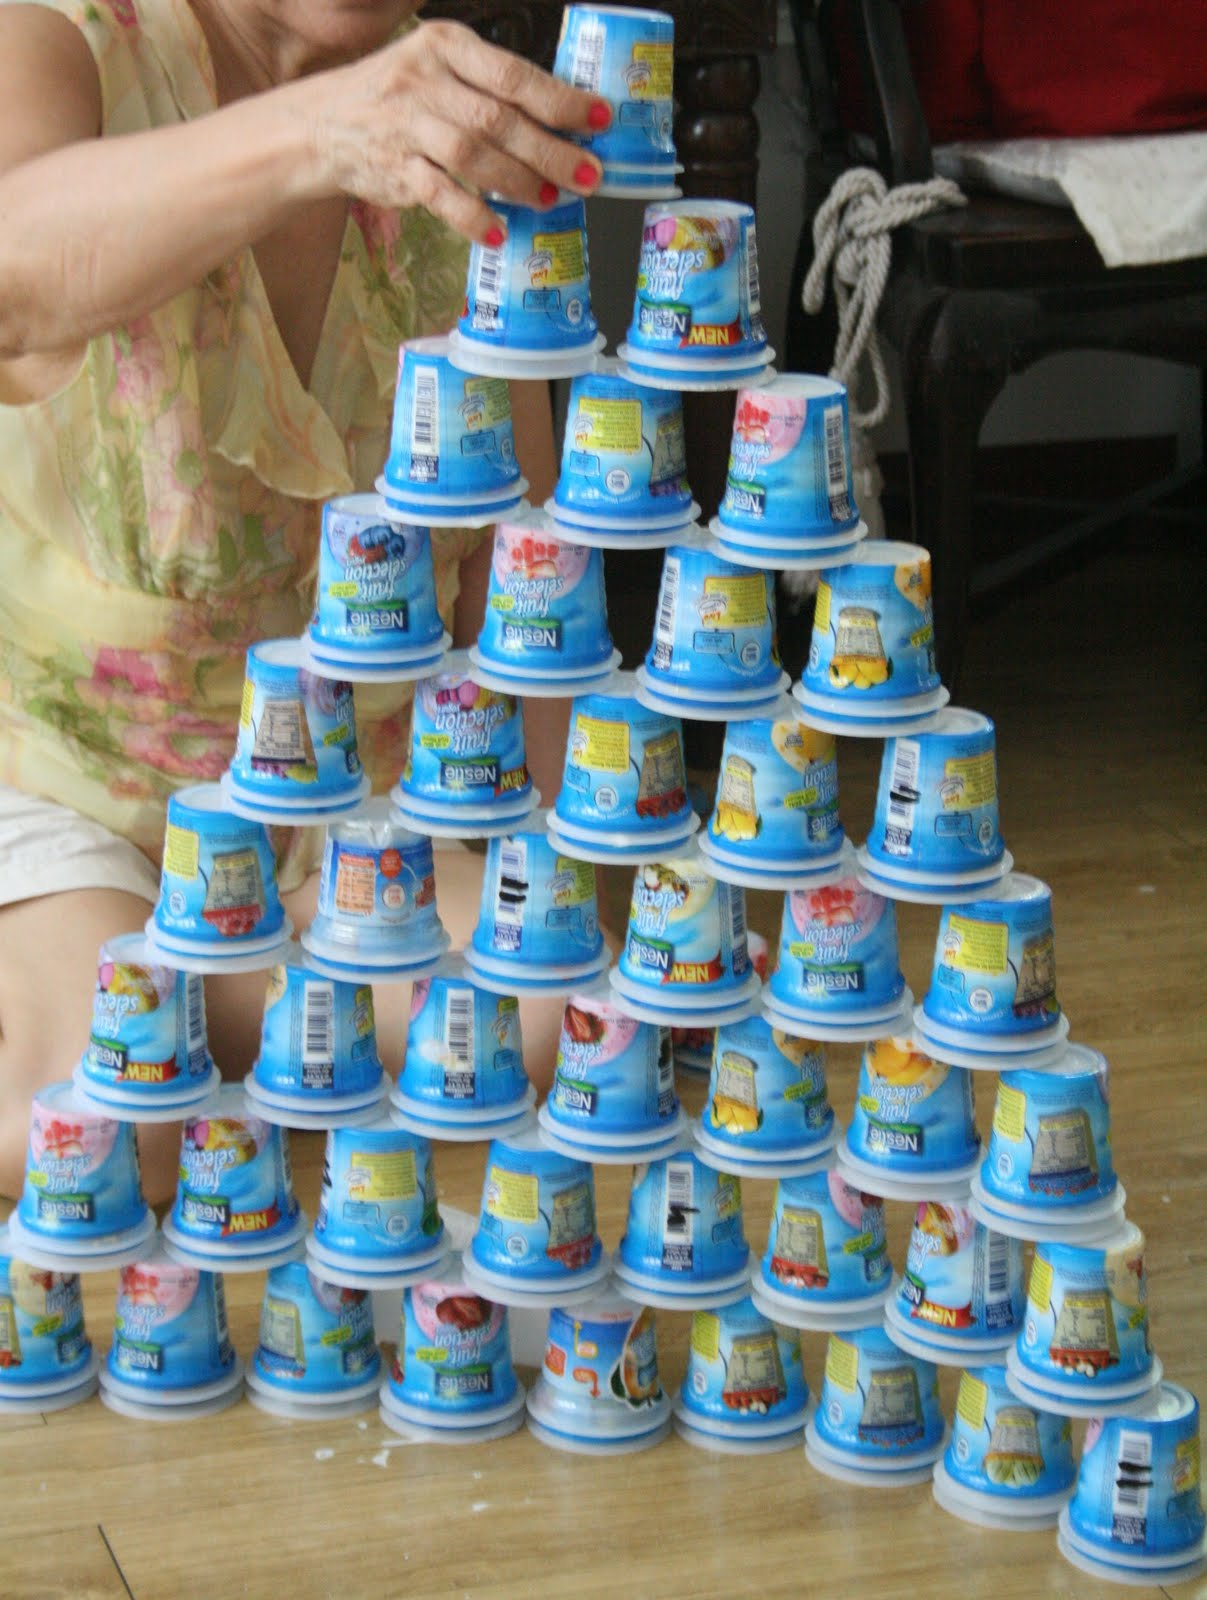 home-eco nanay: what to do with empty yogurt cups